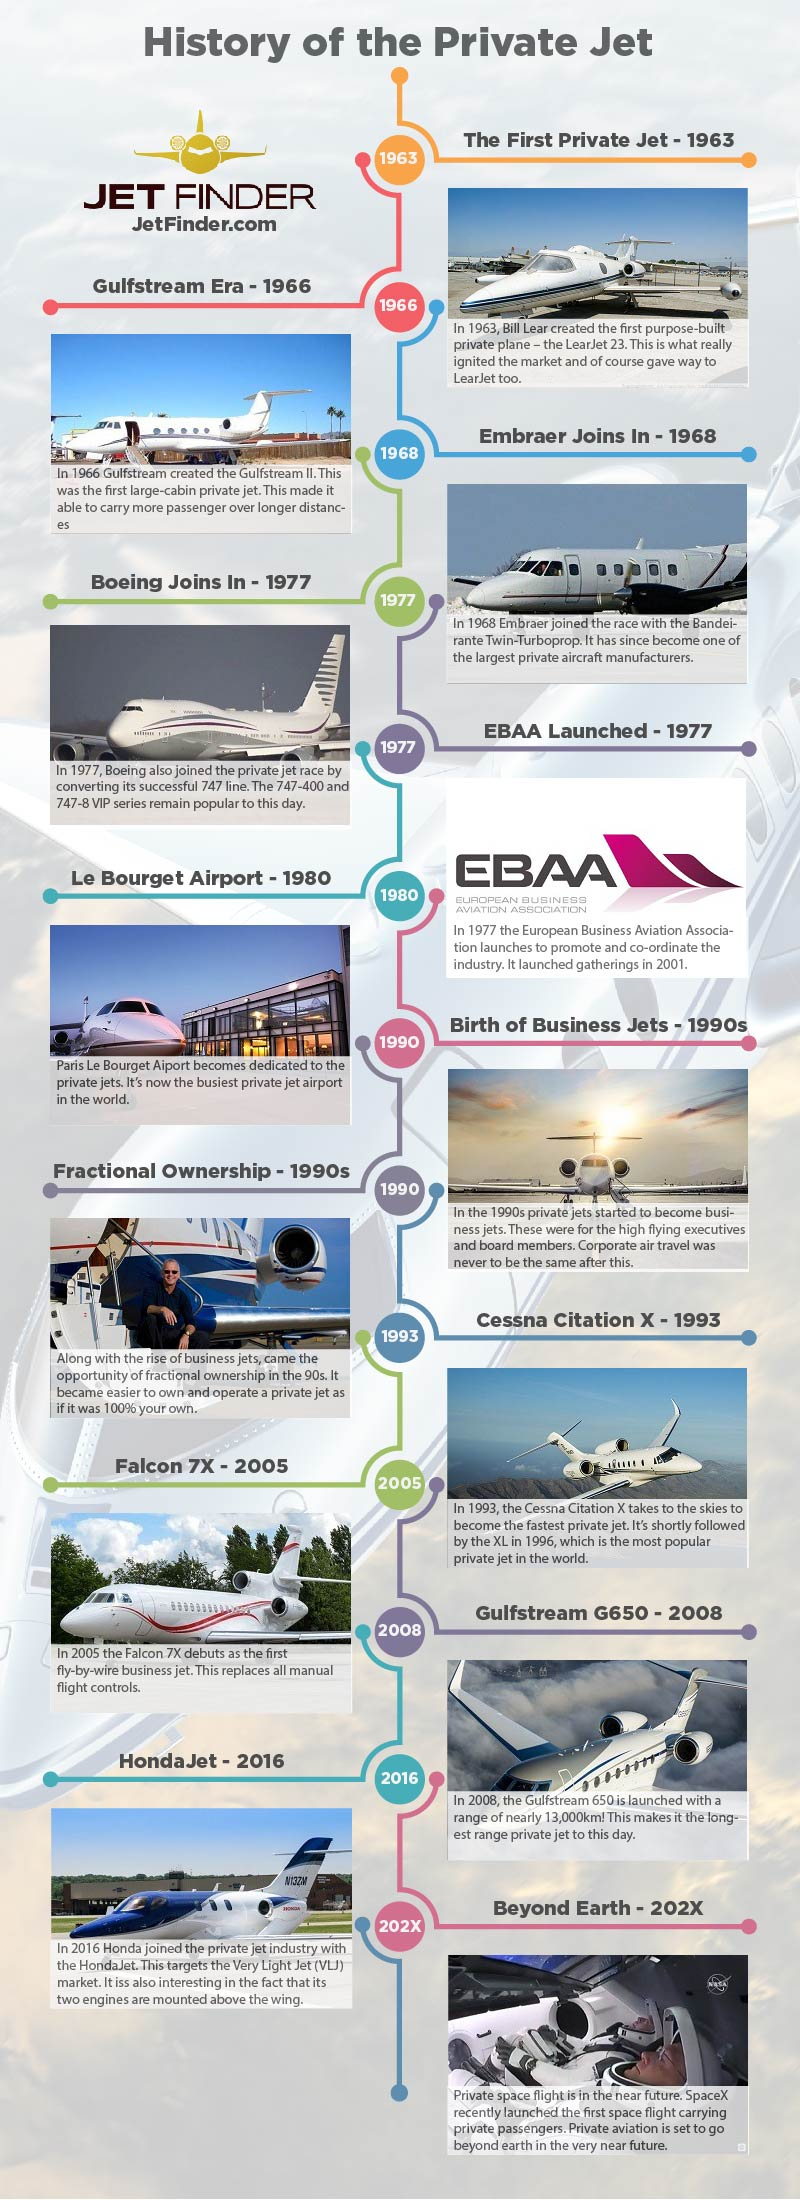 History of the Private Jet